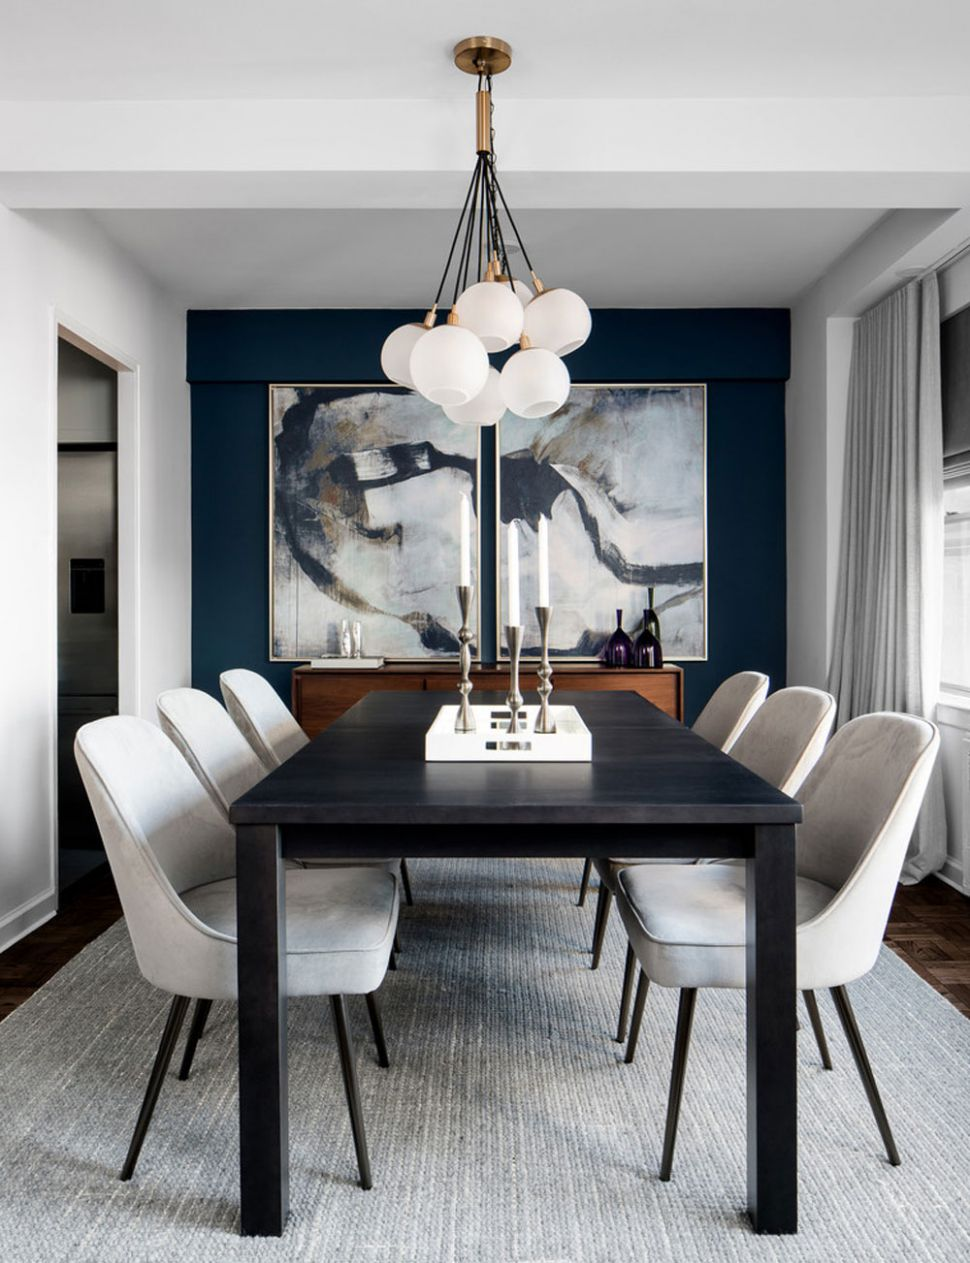 Dining room wall decor ideas that will impress your guests - dining room wall ideas